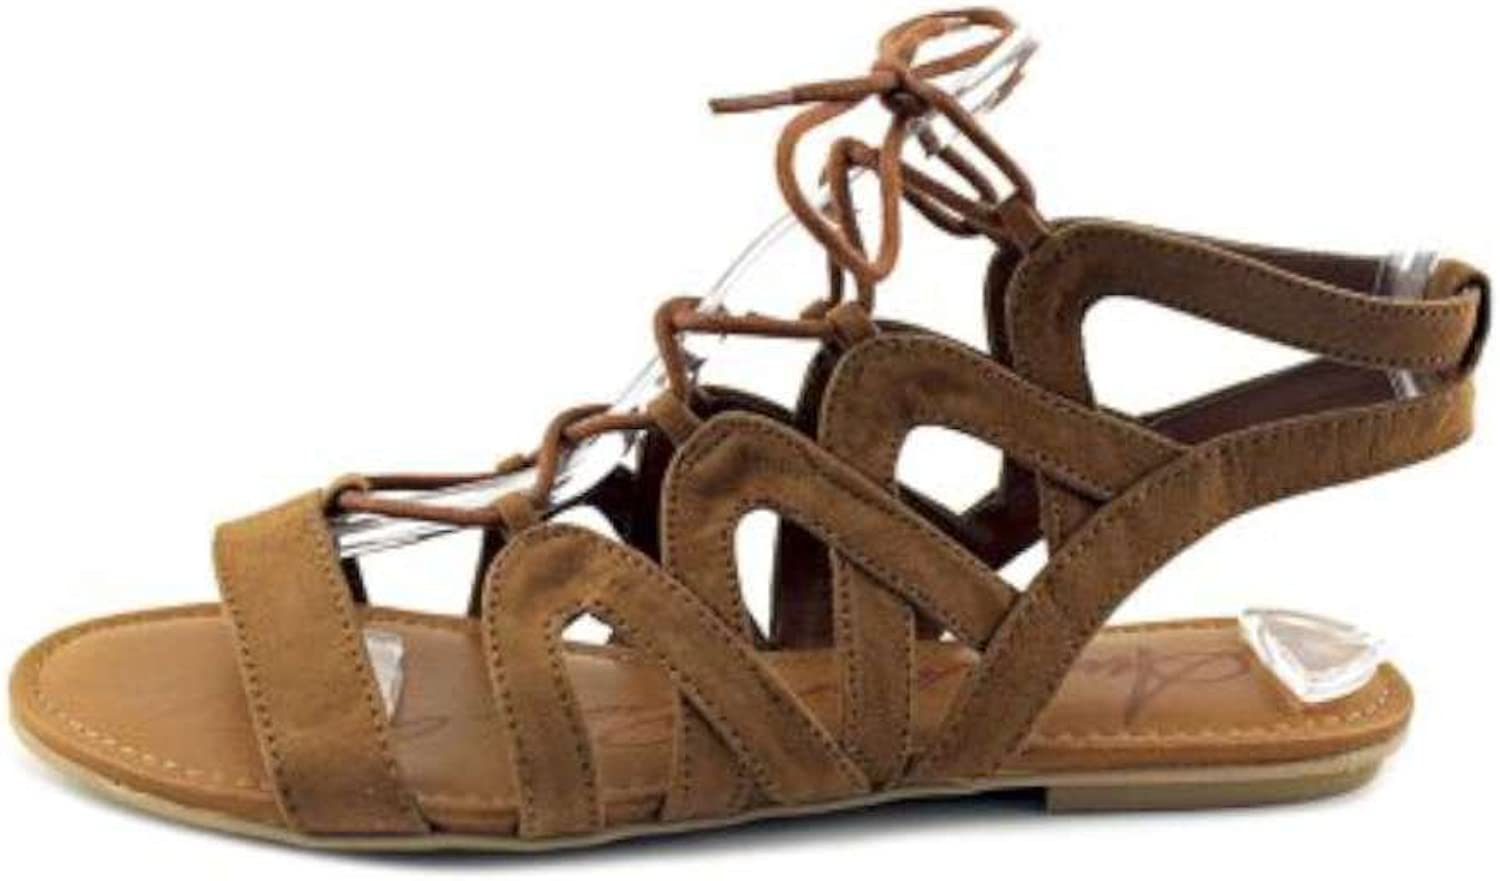 American Rag Womens Marlie Open Toe Casual Gladiator Sandals, Maple, Size 6.5